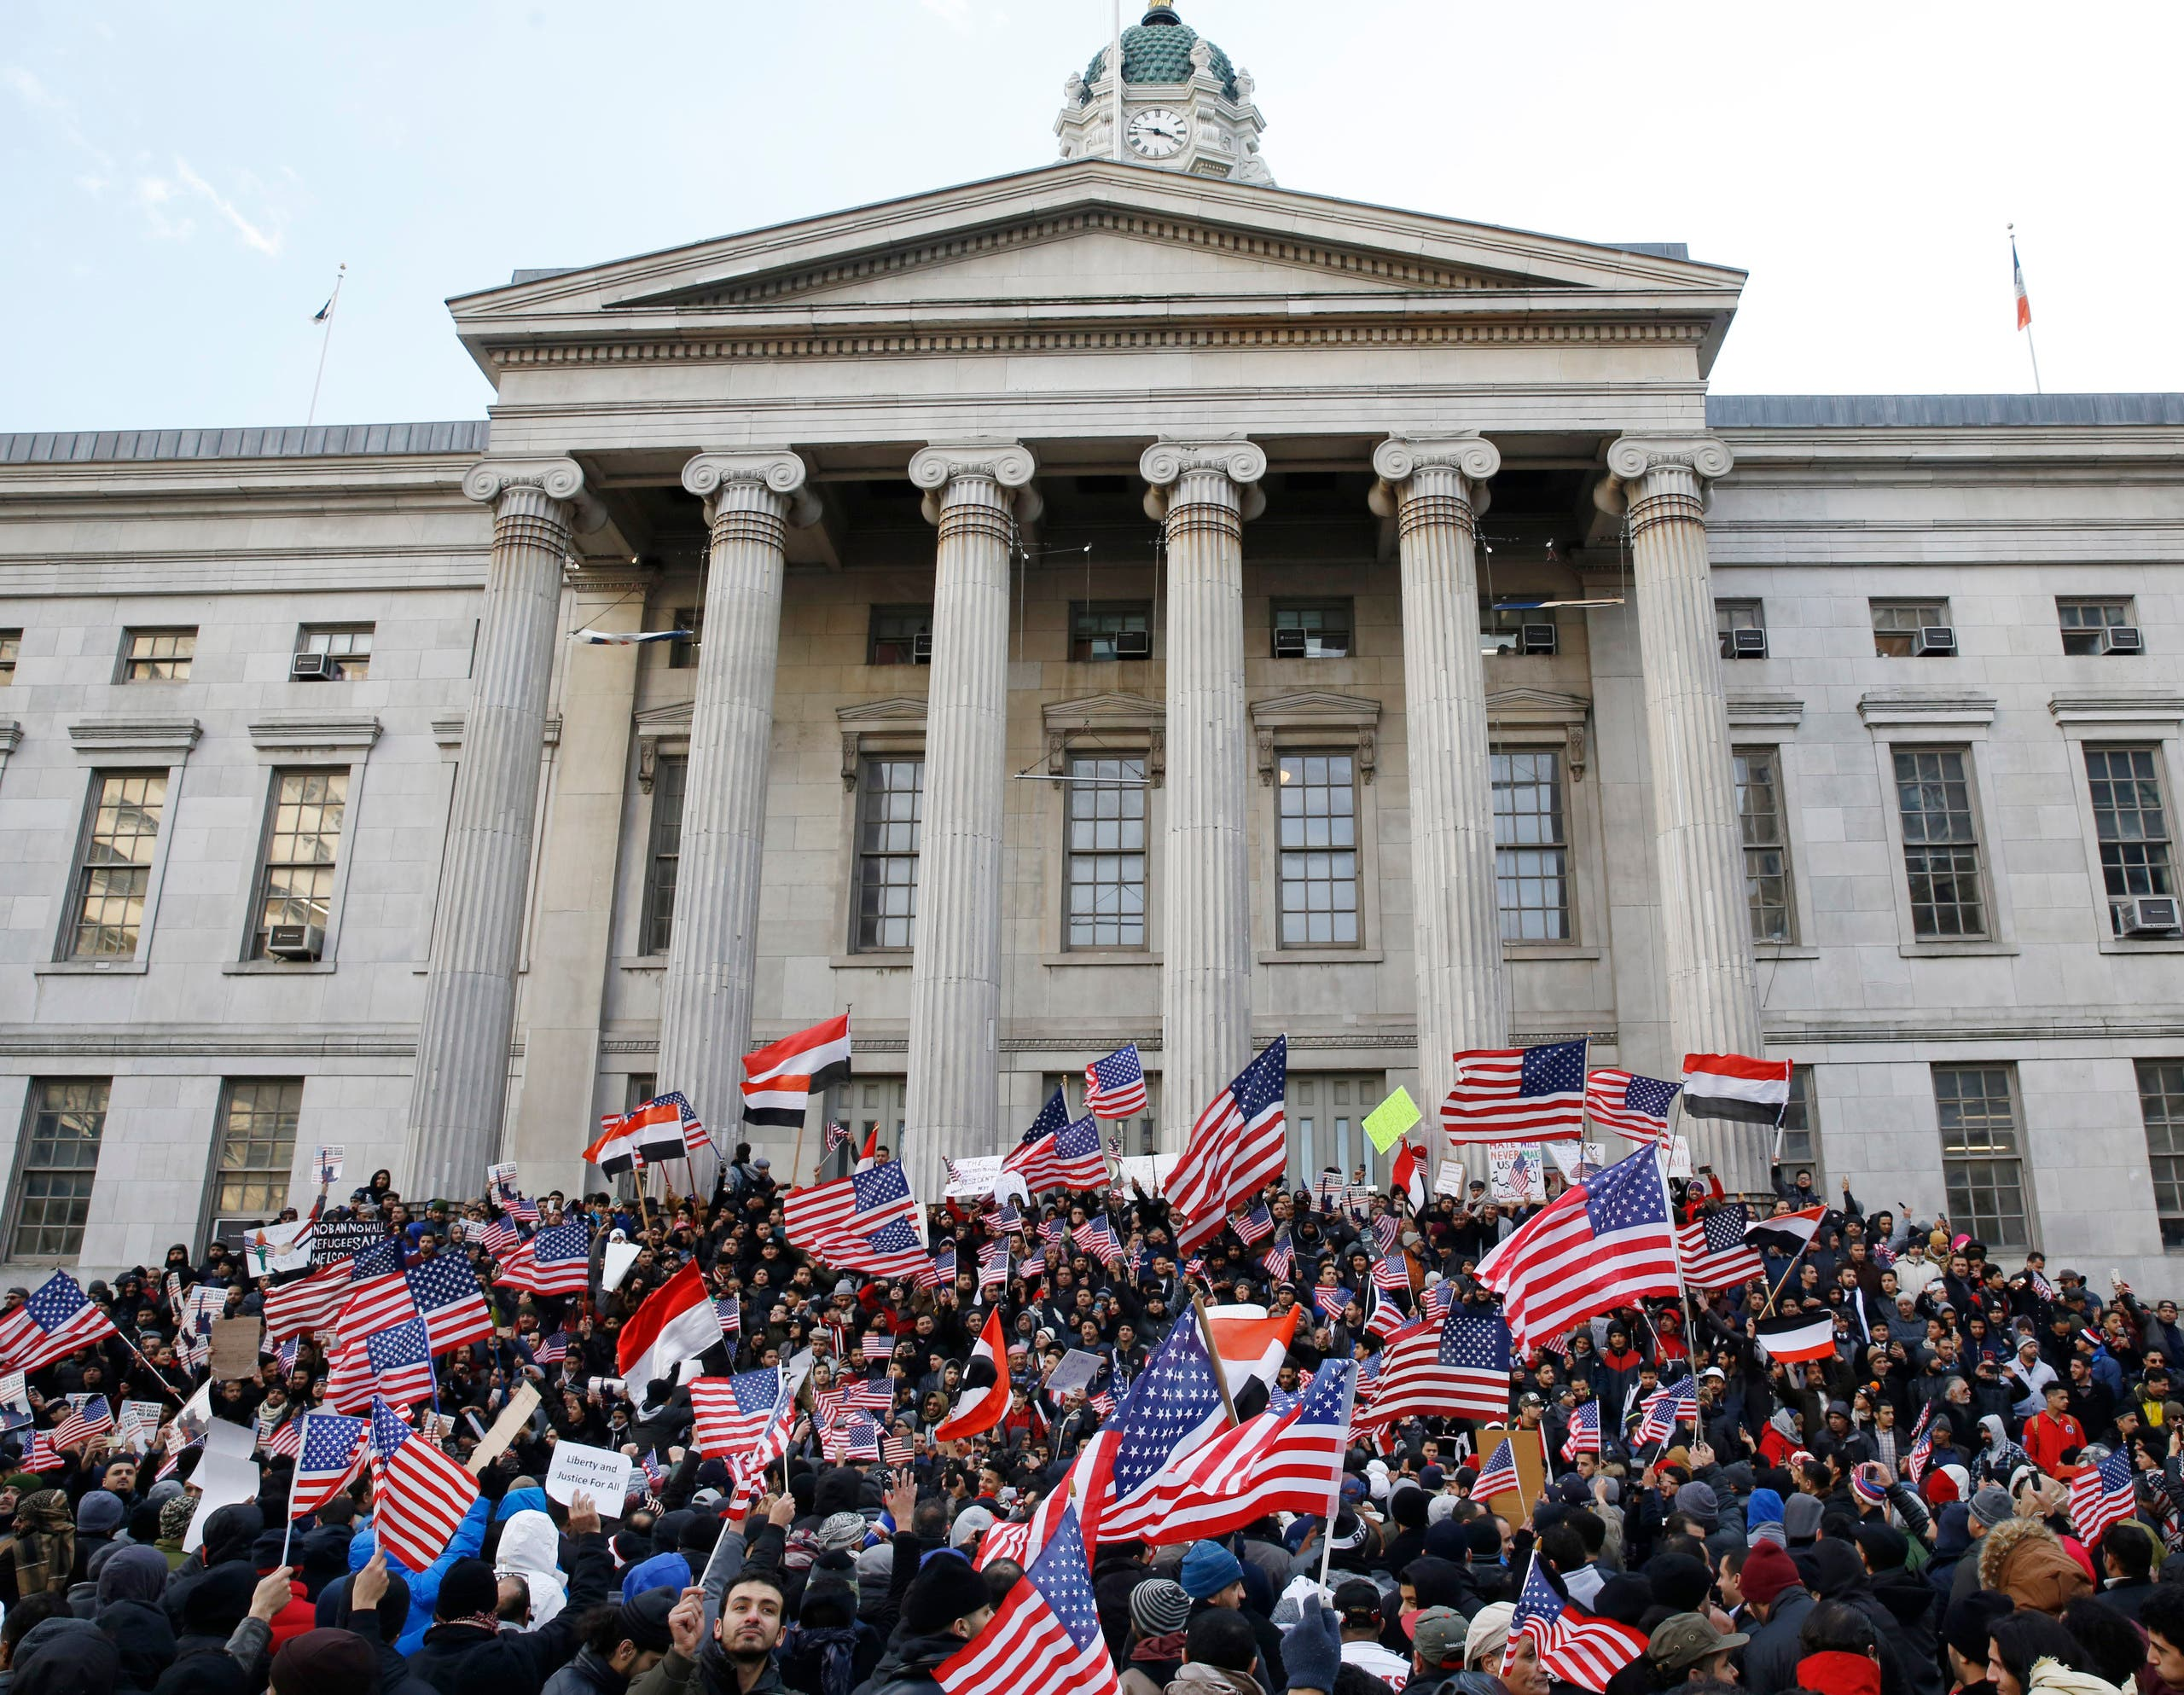 Muslims, members of the Yemeni community and others wave American and Yemeni flags as they gather on the steps of Brooklyn's Borough Hall to protest President Donald Trump's temporary travel ban on citizens from seven predominantly Muslim countries, Thursday, Feb. 2, 2017, in New York. (AP)